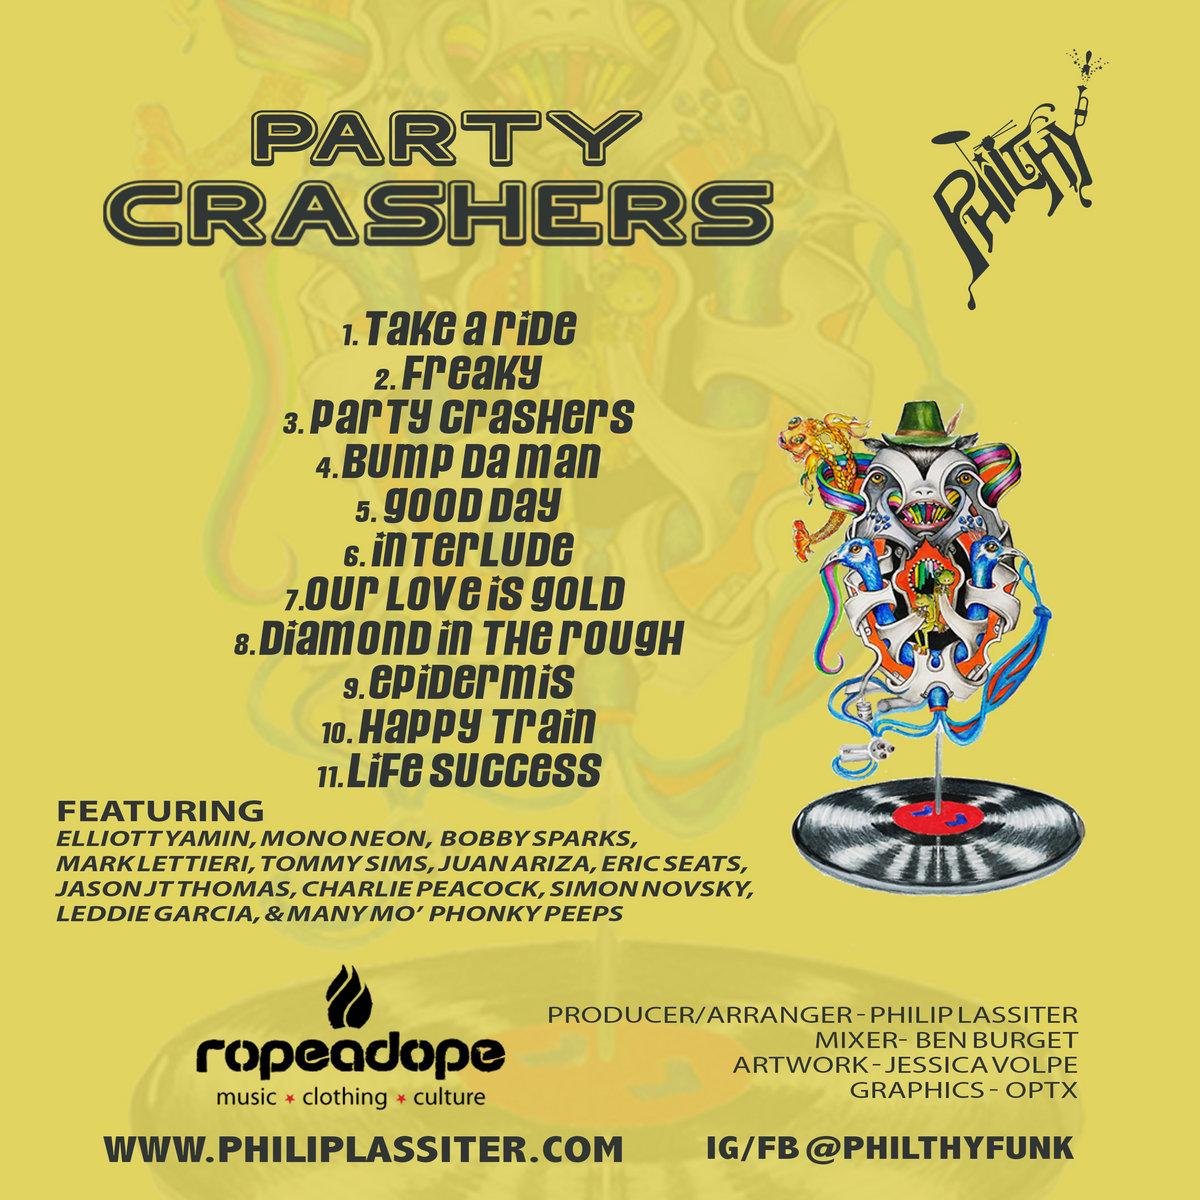 Party Crashers Philthy